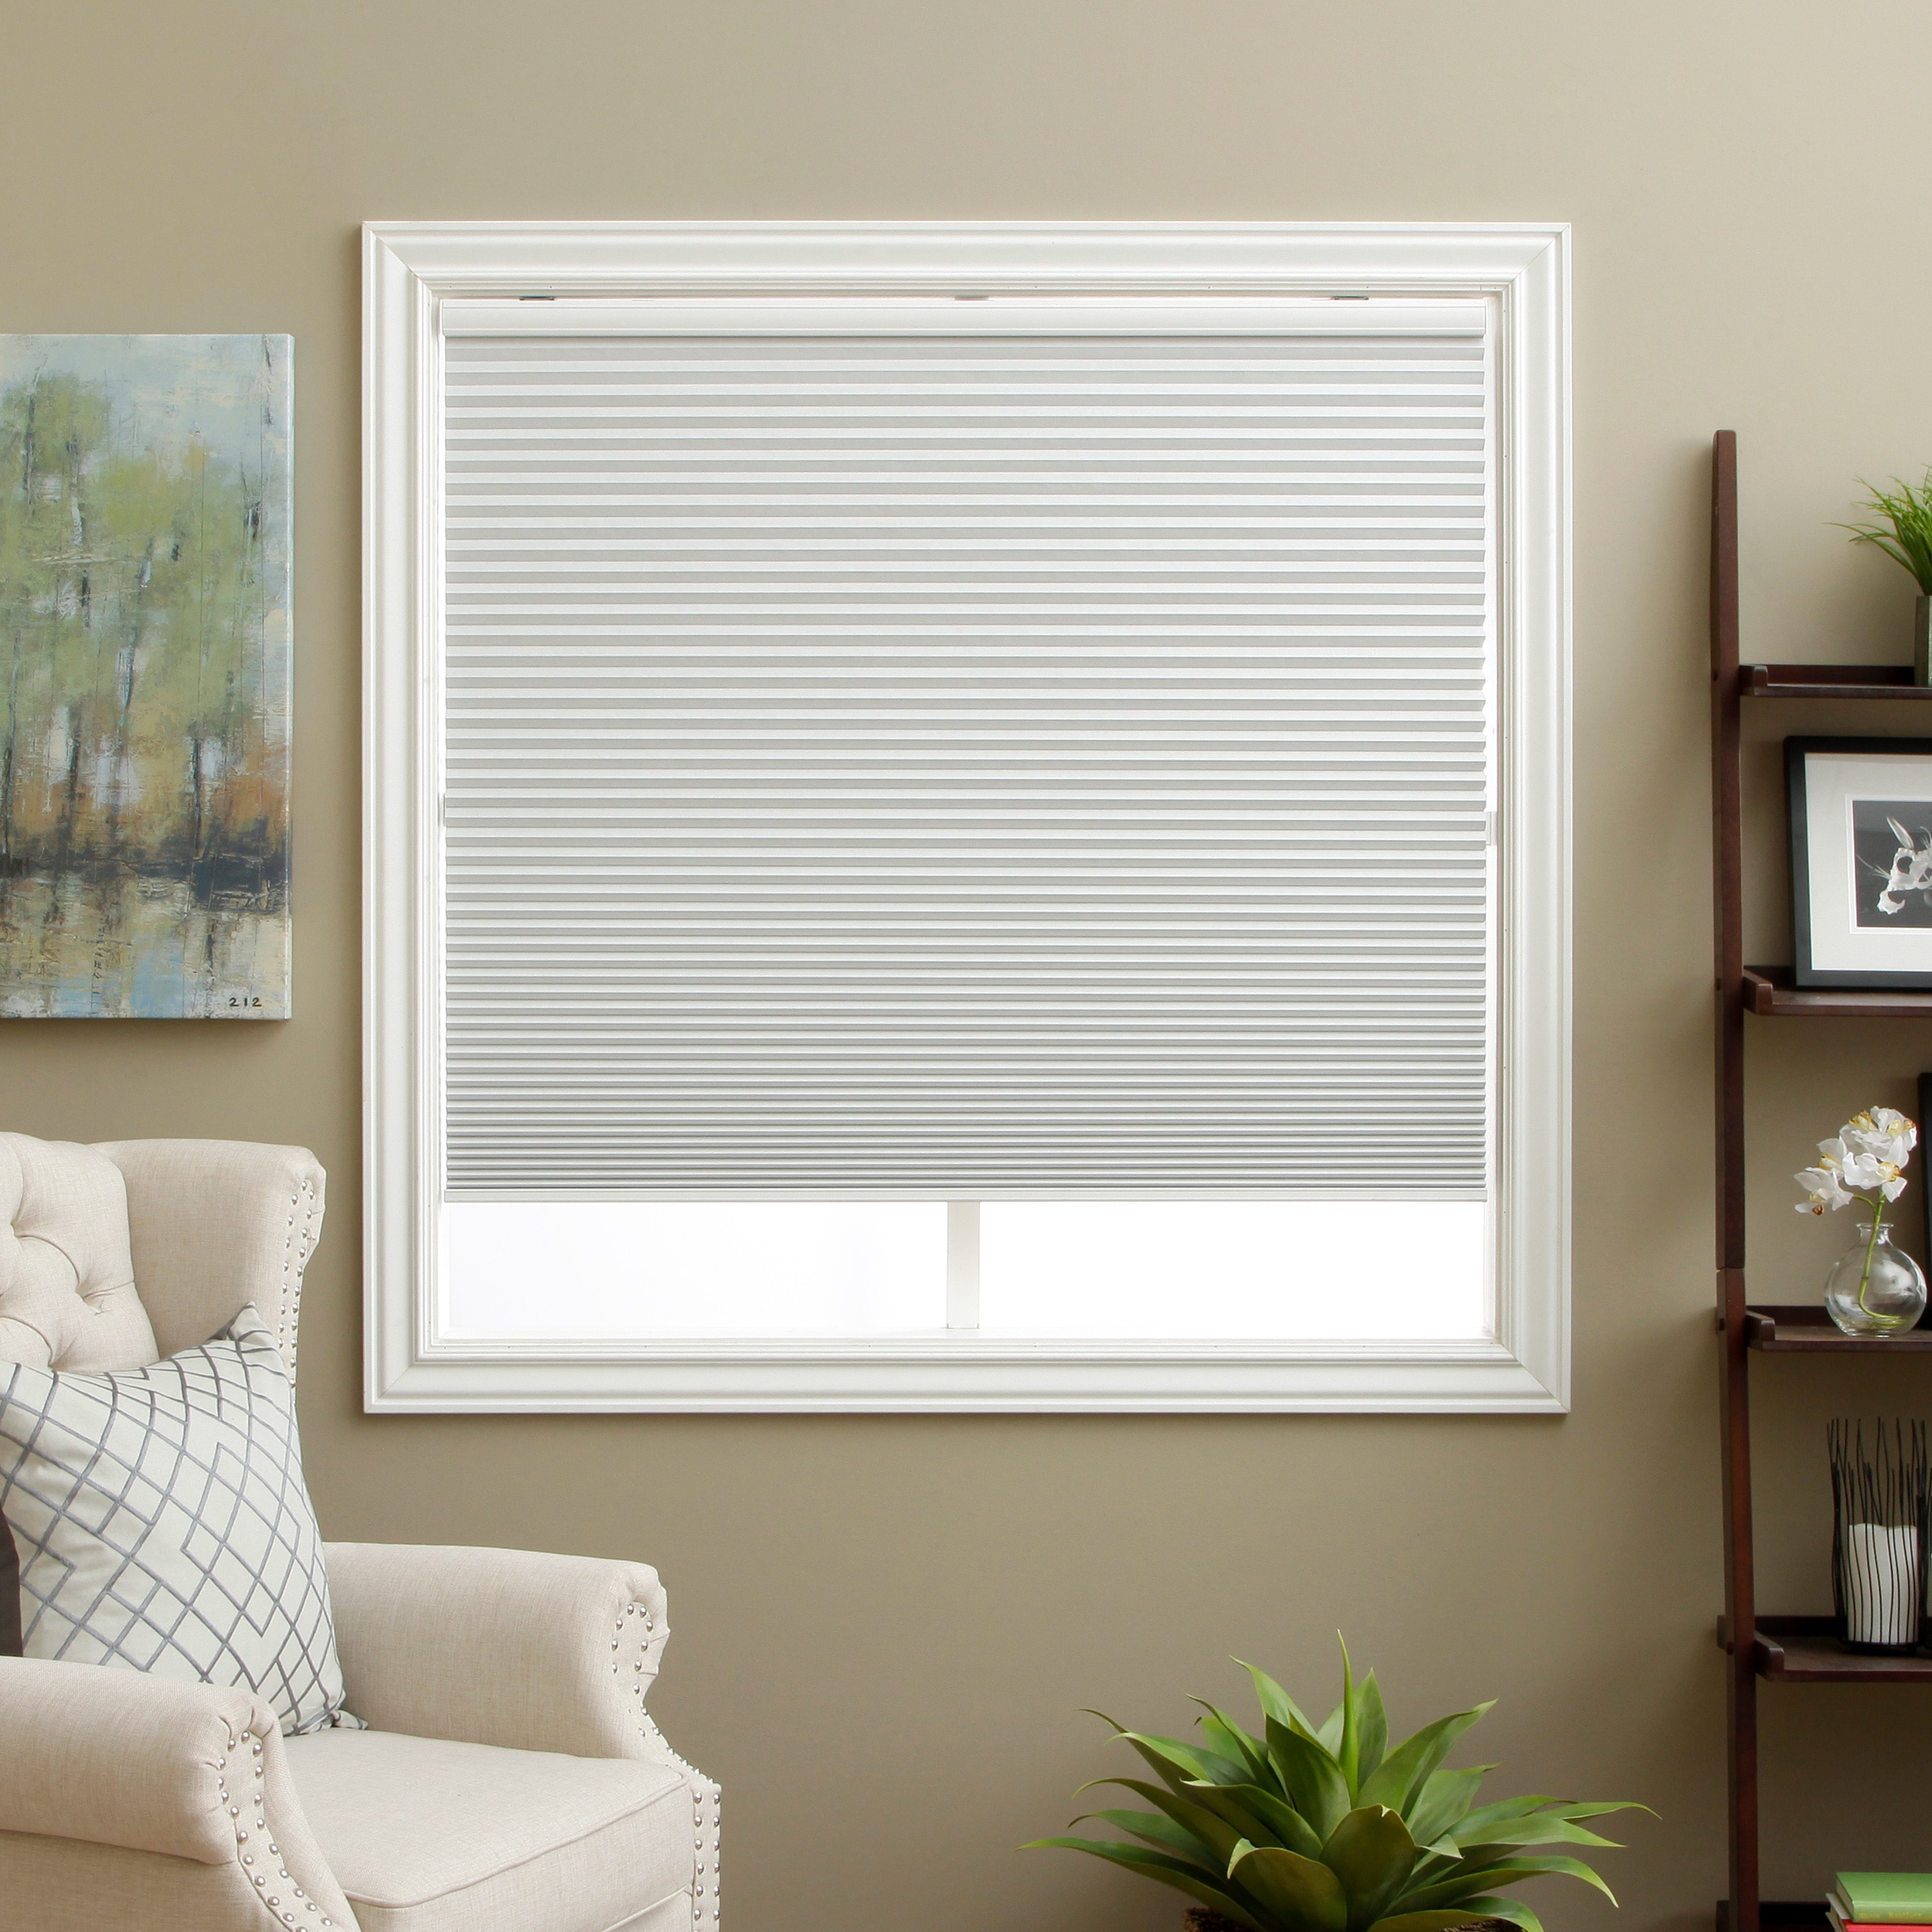 Arlo Blinds White Room Darkening Cordless Lift Cellular Shades Ebay